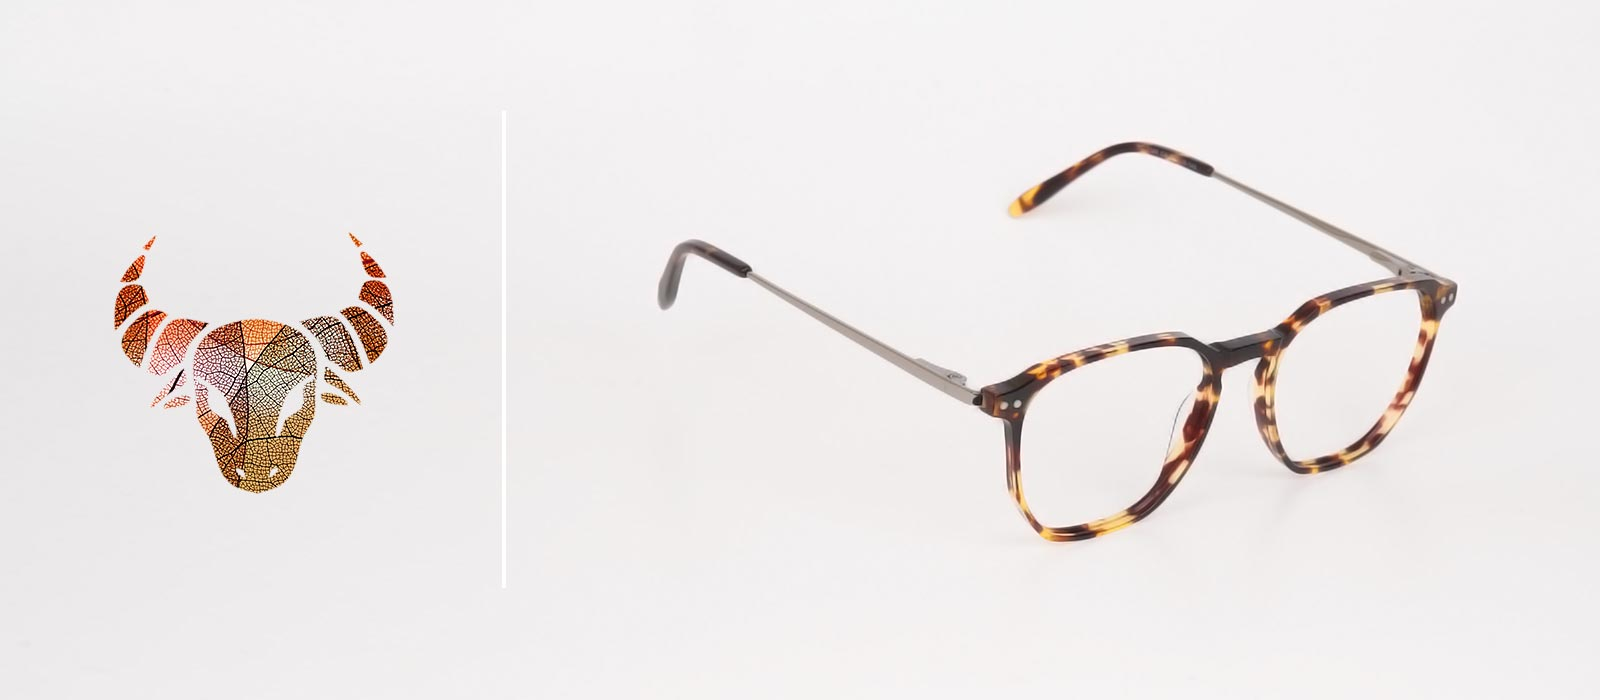 eyeglasses trend 2019 according tauras zodiac sign